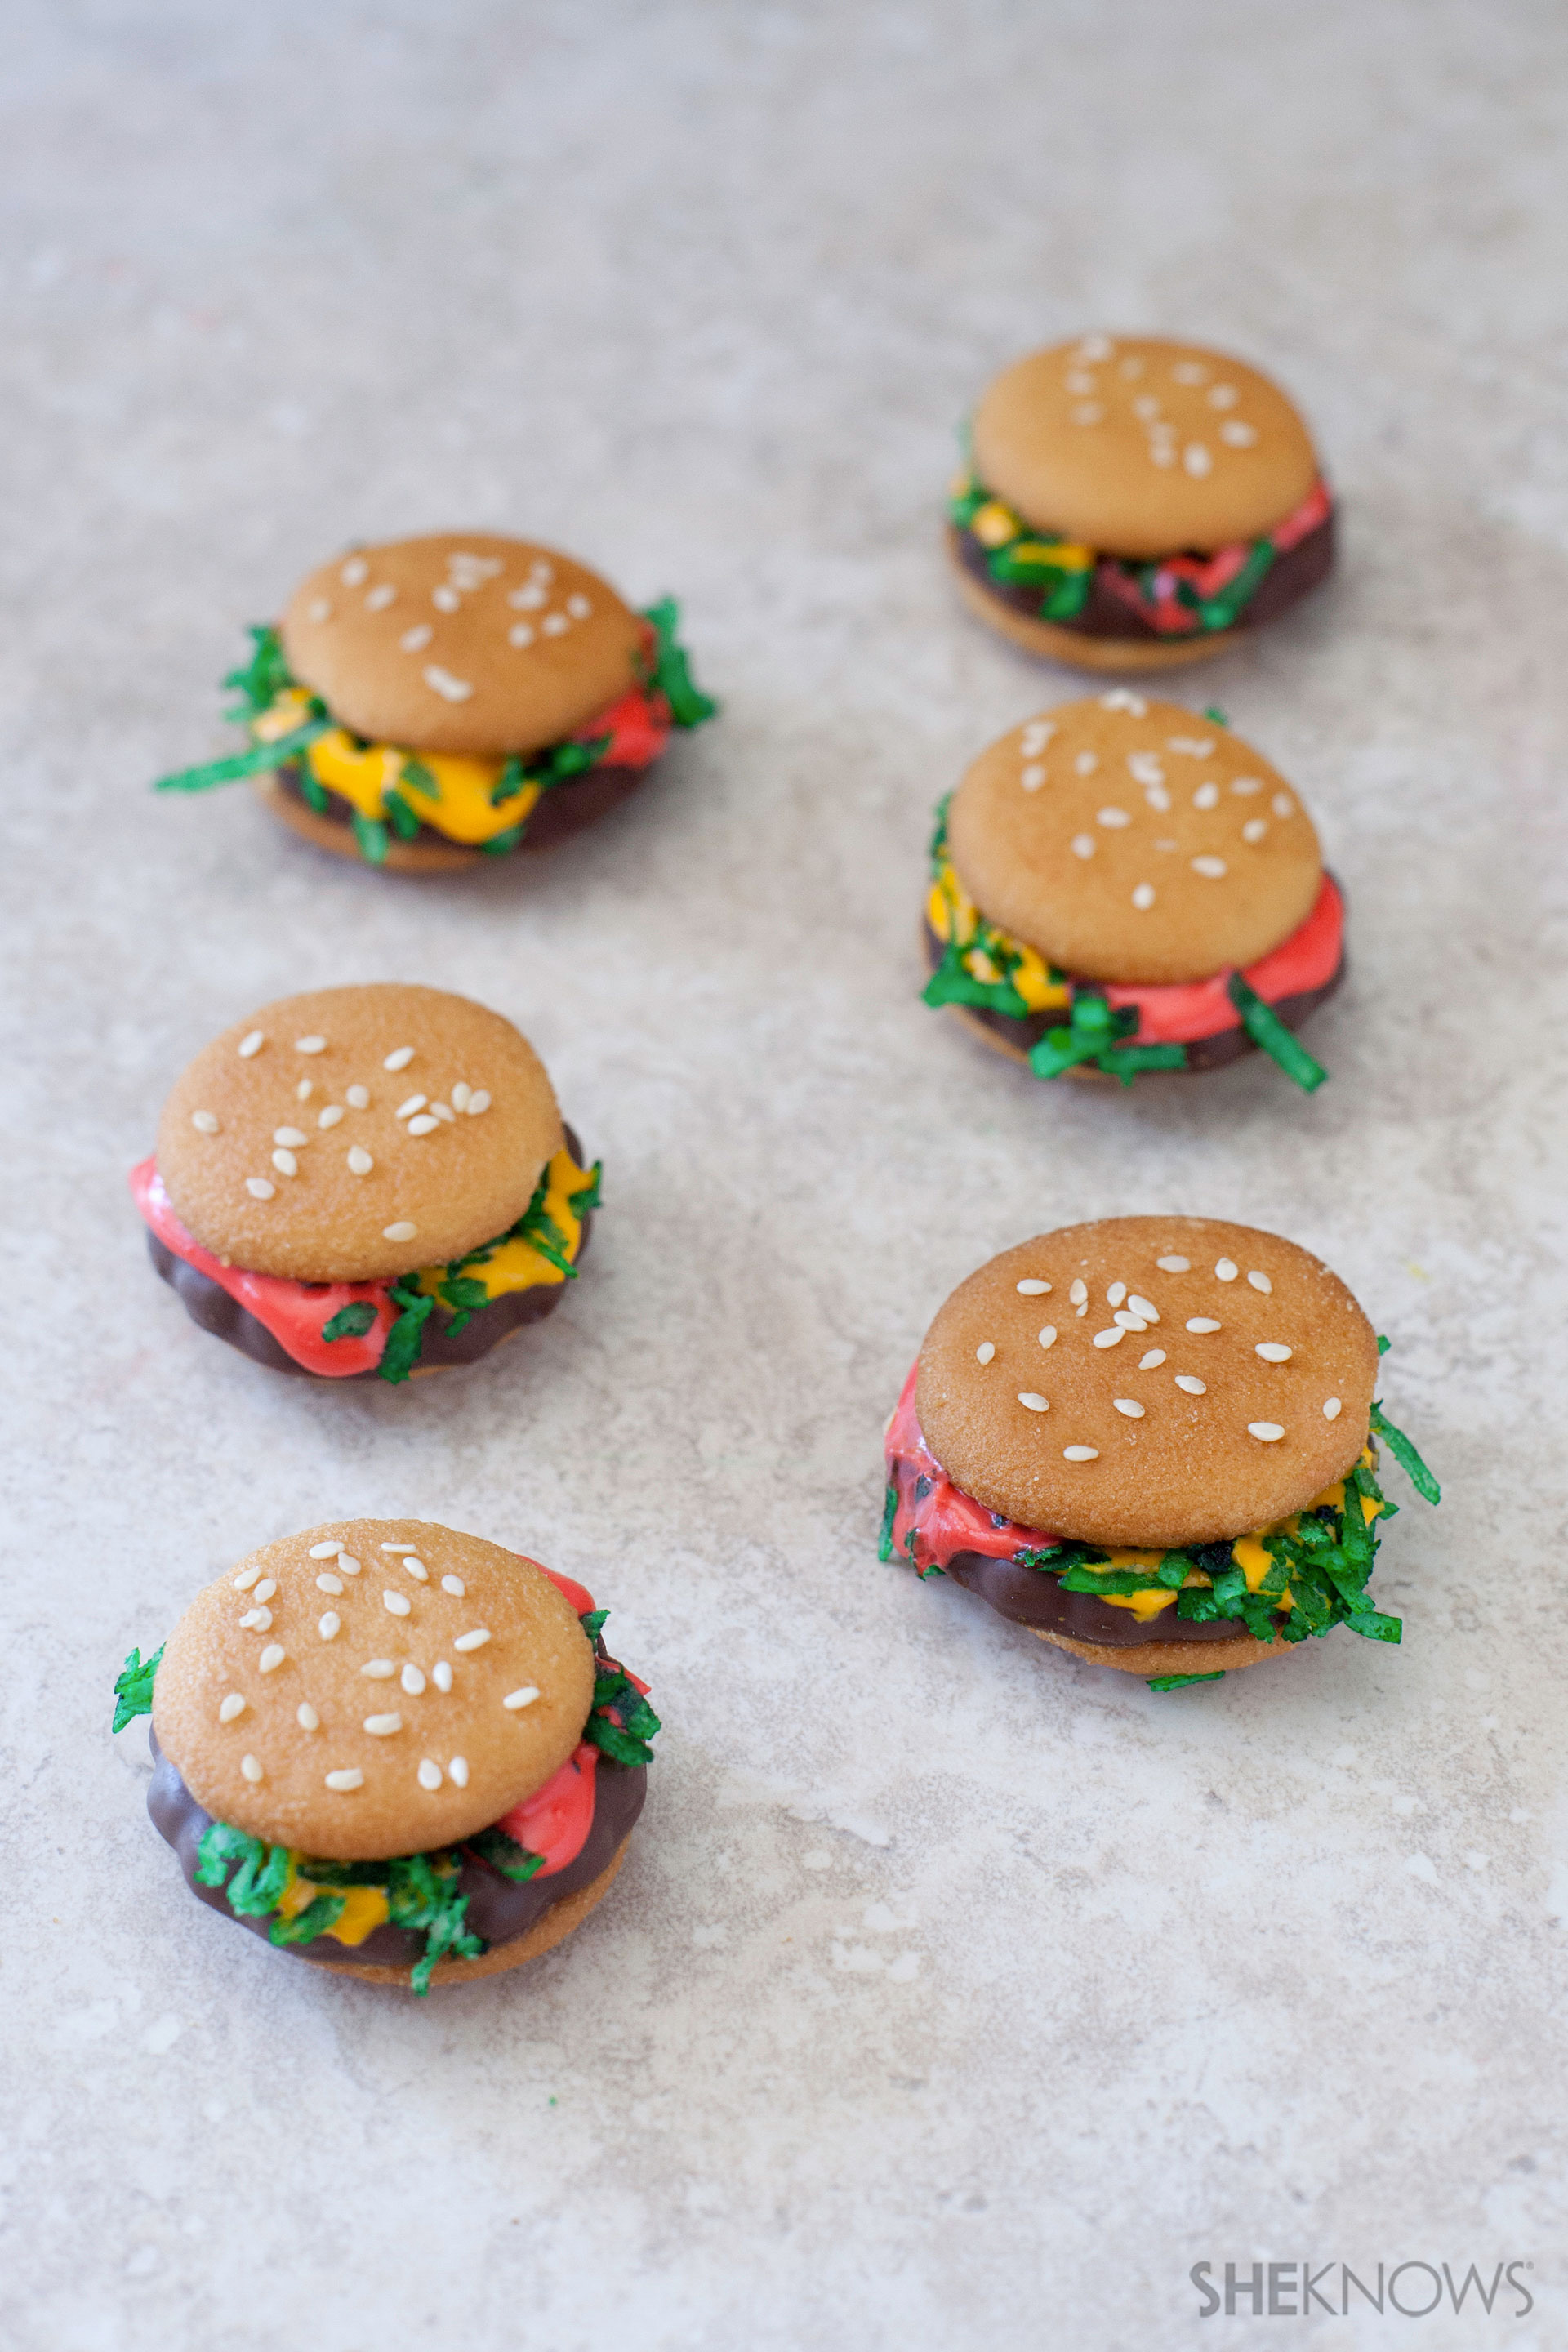 They might look like hamburgers, but they're actually sweet treats